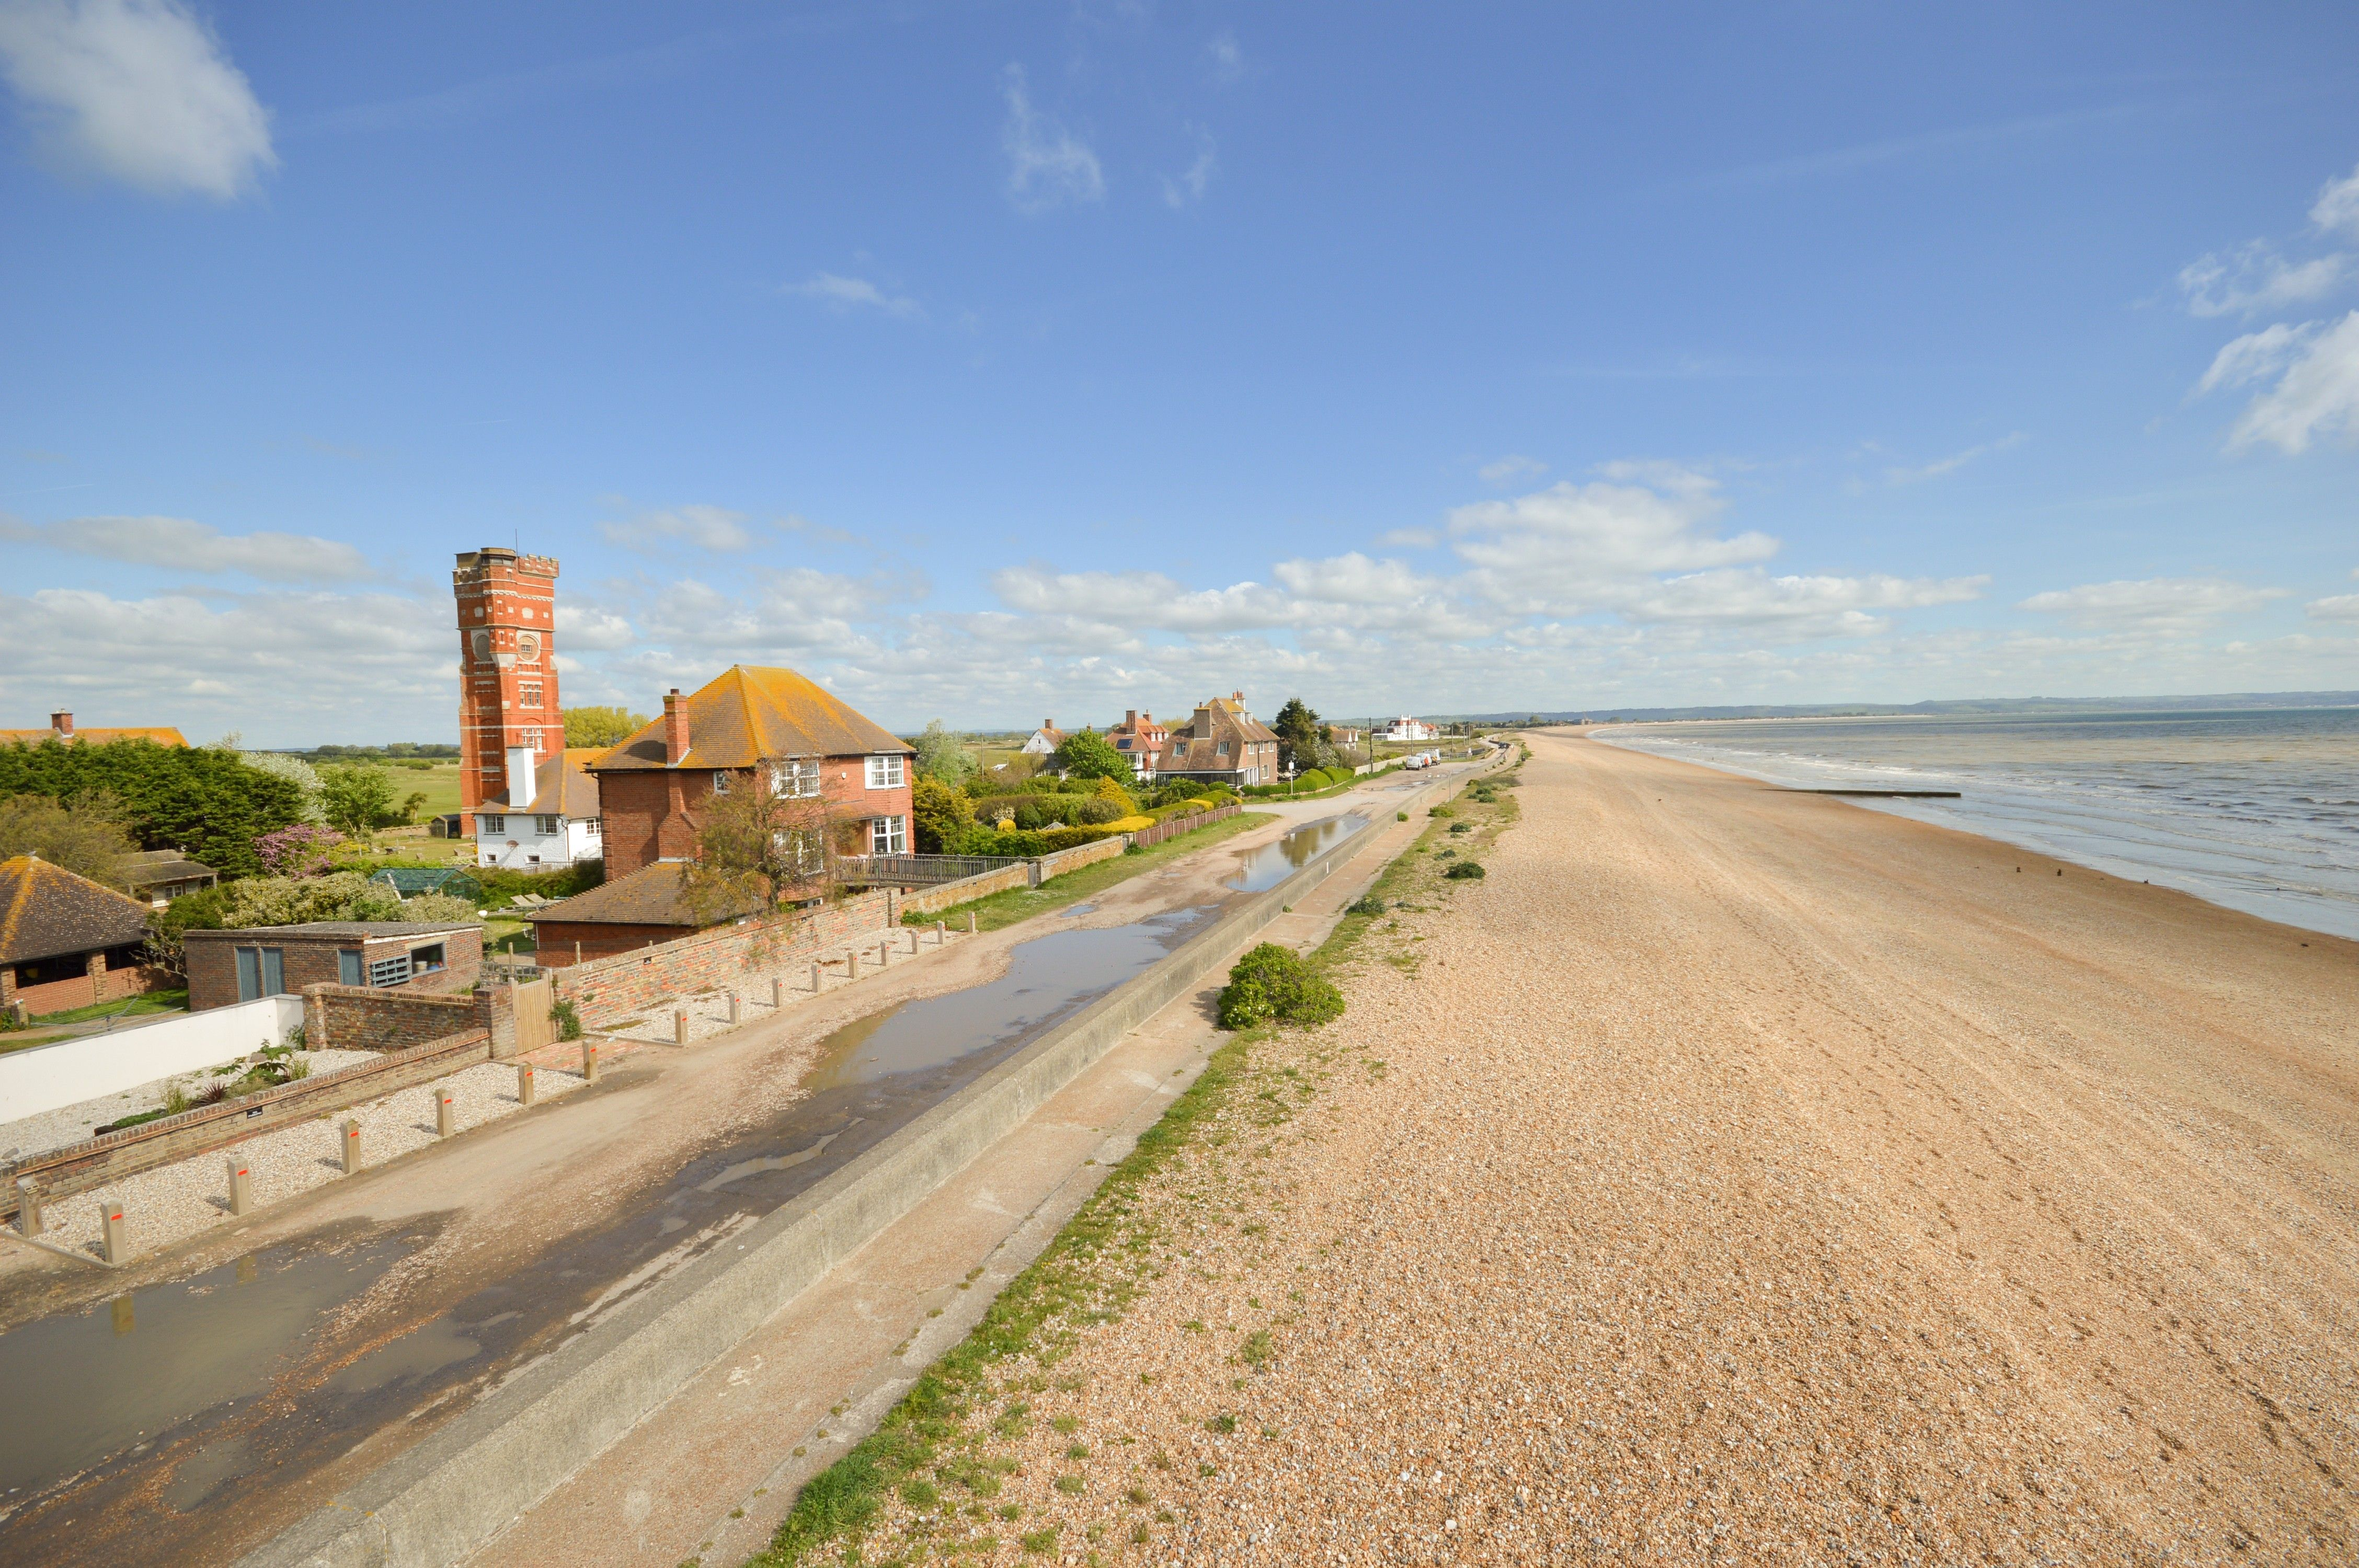 Beachfront coastal home with views over the ocean for sale in Kent